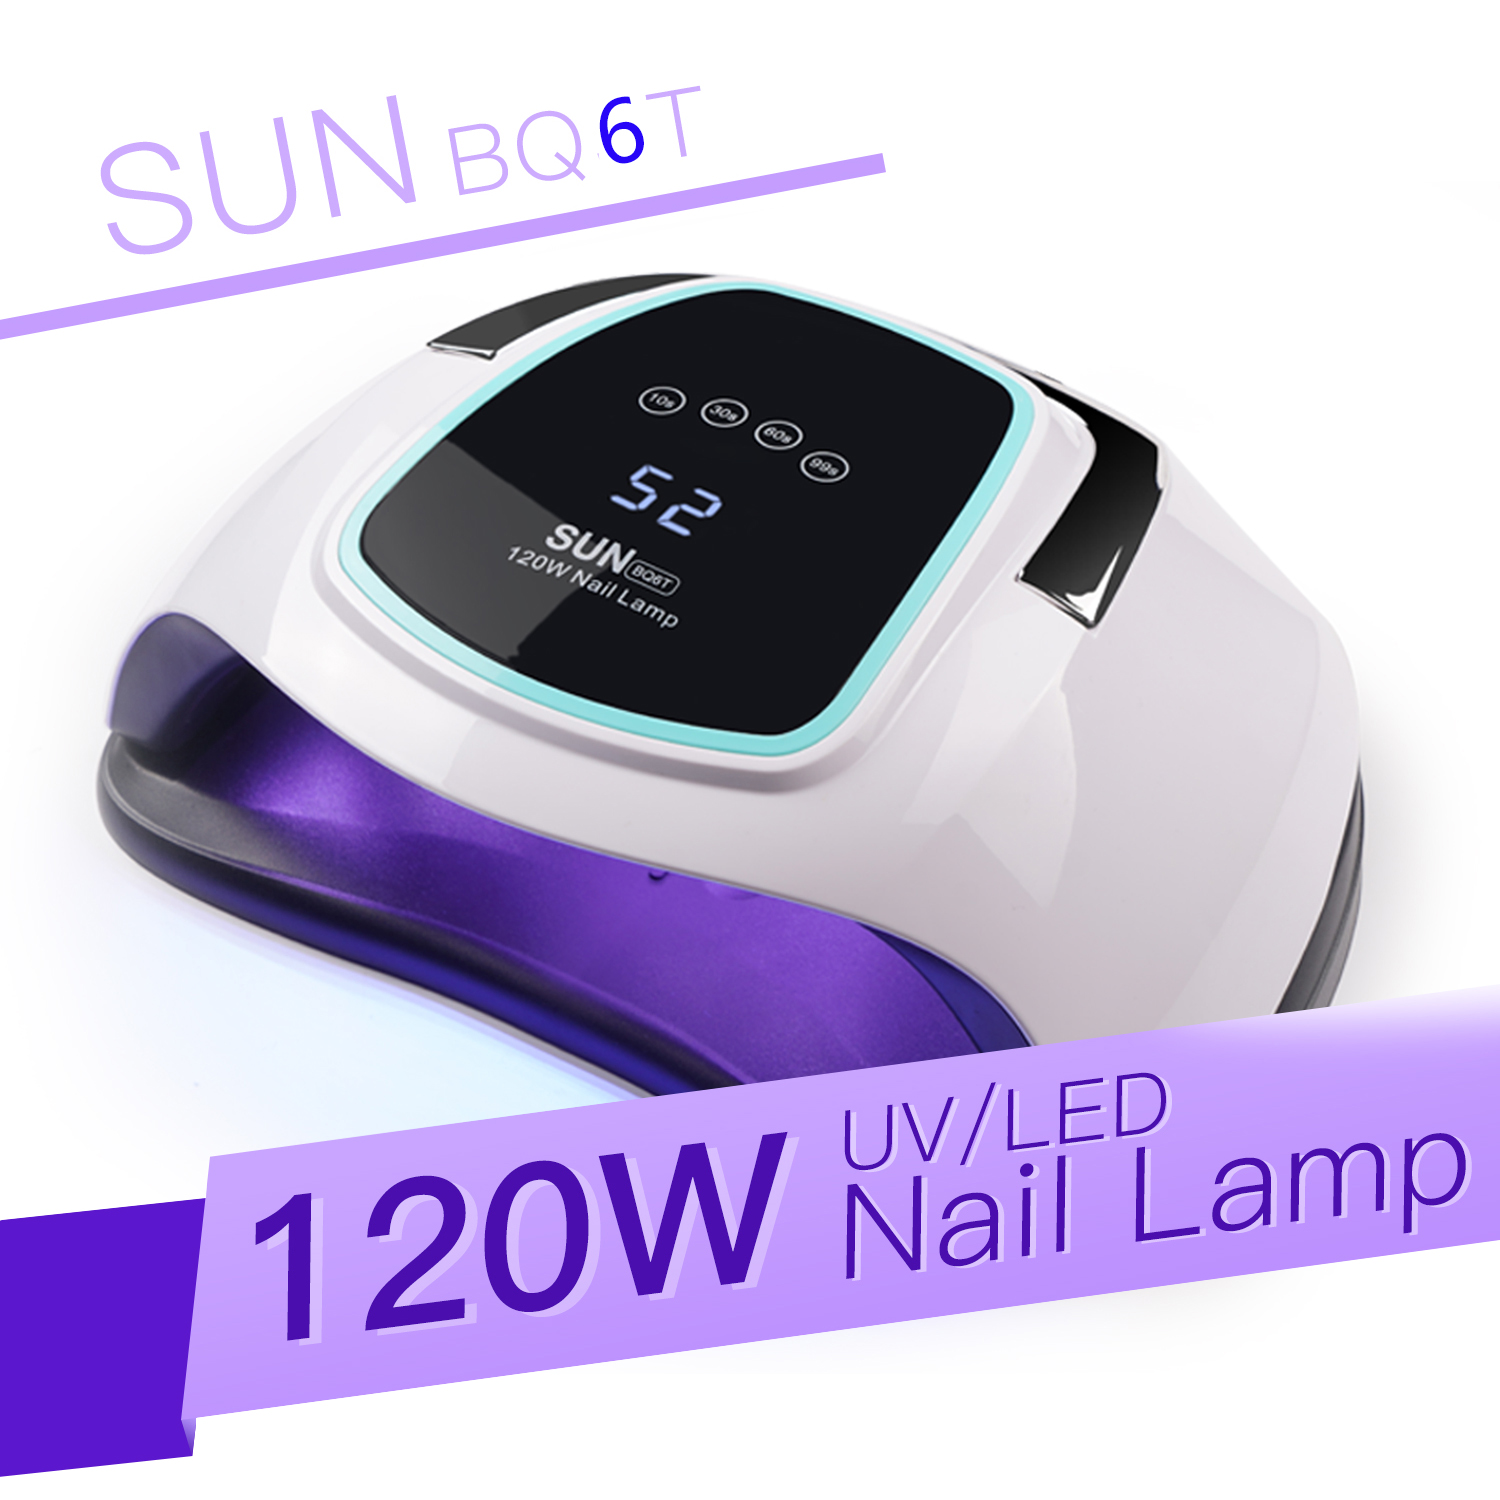 SUN BQ6T 120W UV LED Lamp For Nails Dryer Drying For Manicure Gel Nail Lamp Drying For Gel Varnish LCD Screen Nail Dryer